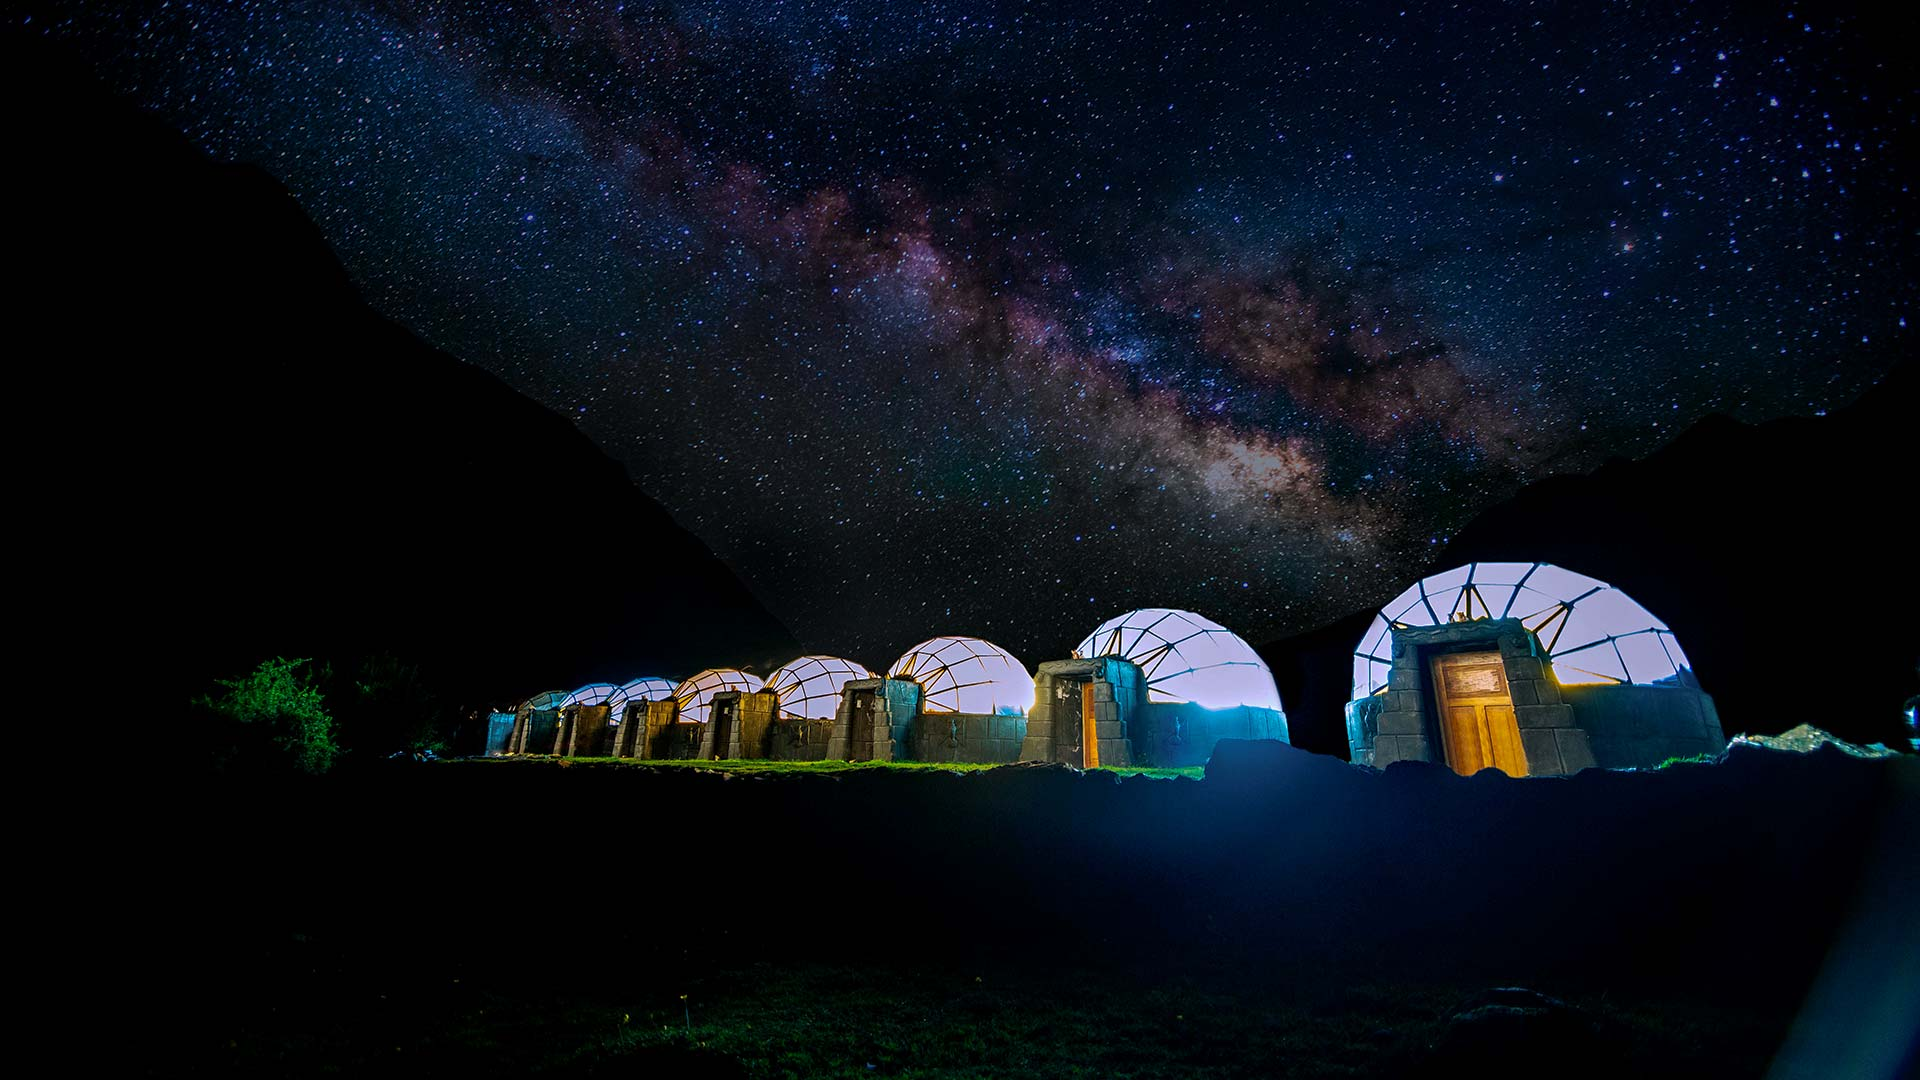 View of our Sky Camp and the sky full of stars at night in Soraypampa - Salkantay Trek to Machu Picchu